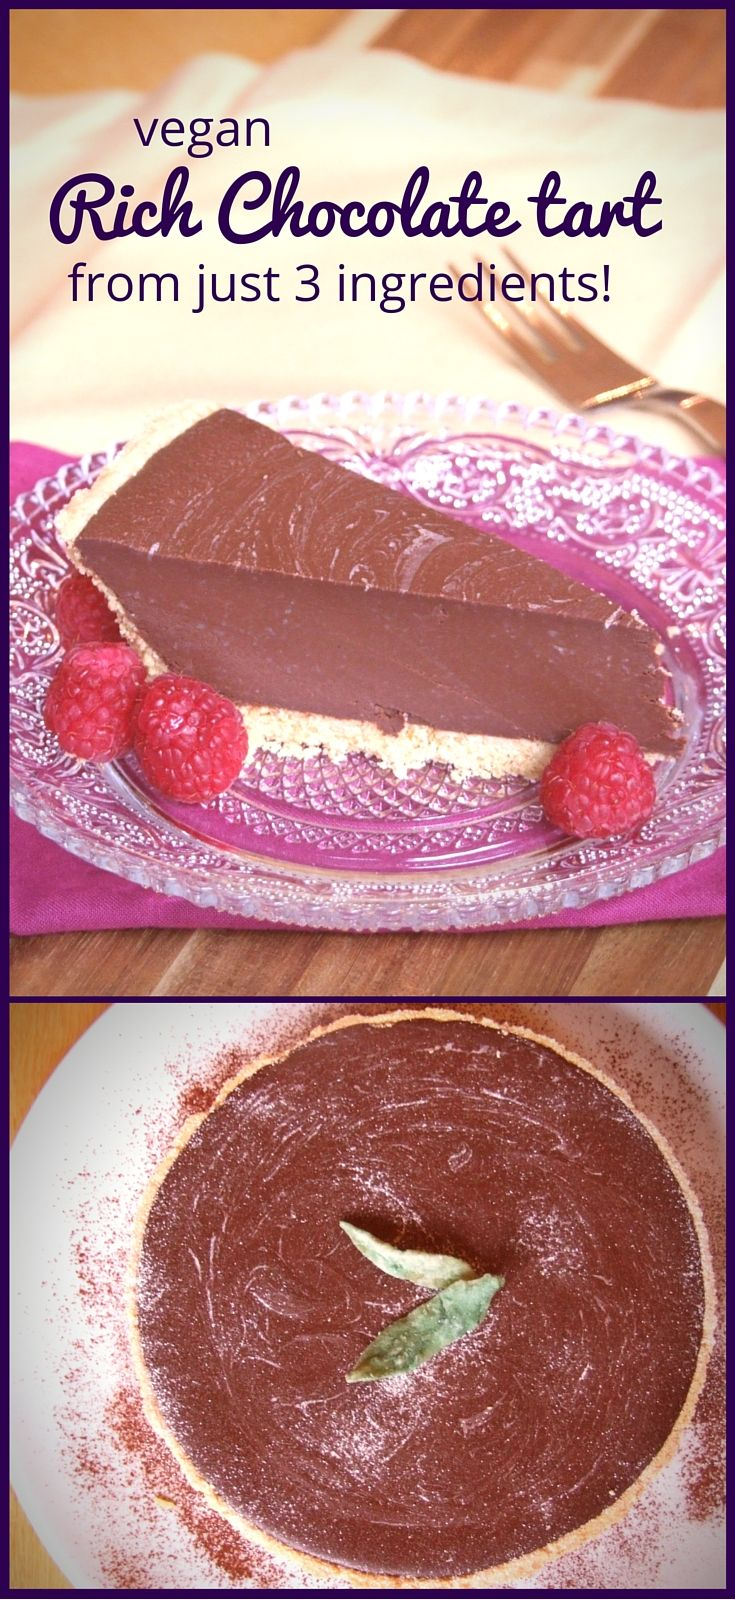 Rich, smooth, creamy, dense, sublimely chocolatey... this vegan chocolate tart is just gorgeous! No-one will believe it only took 10 minutes & 3 ingredients to make!